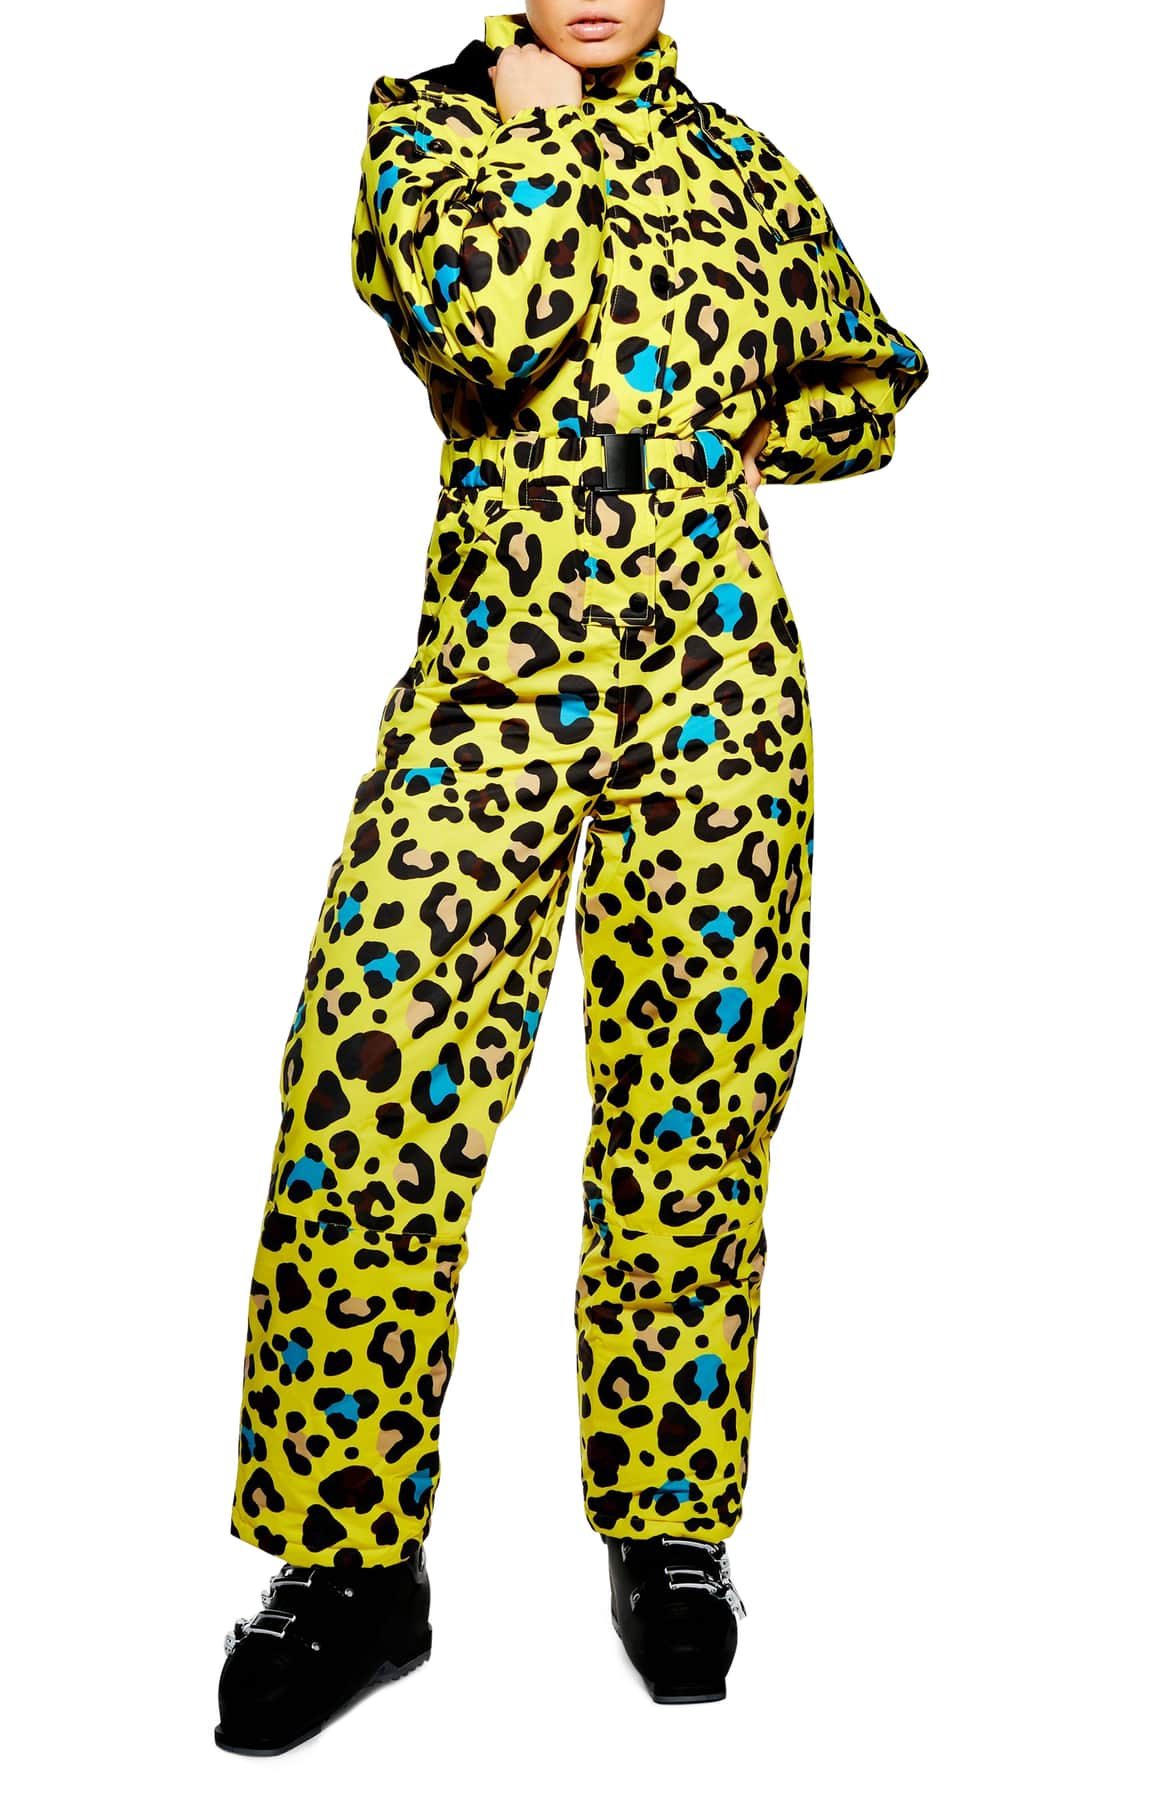 <p>One things for sure, you'll be sure to stand out in this number! Hit the slopes in this breathable, waterproof jumpsuit styled with a detachable hood in a vibrant animal print.{&nbsp;}$330.00 (Image: Nordstrom){&nbsp;}</p><p></p>